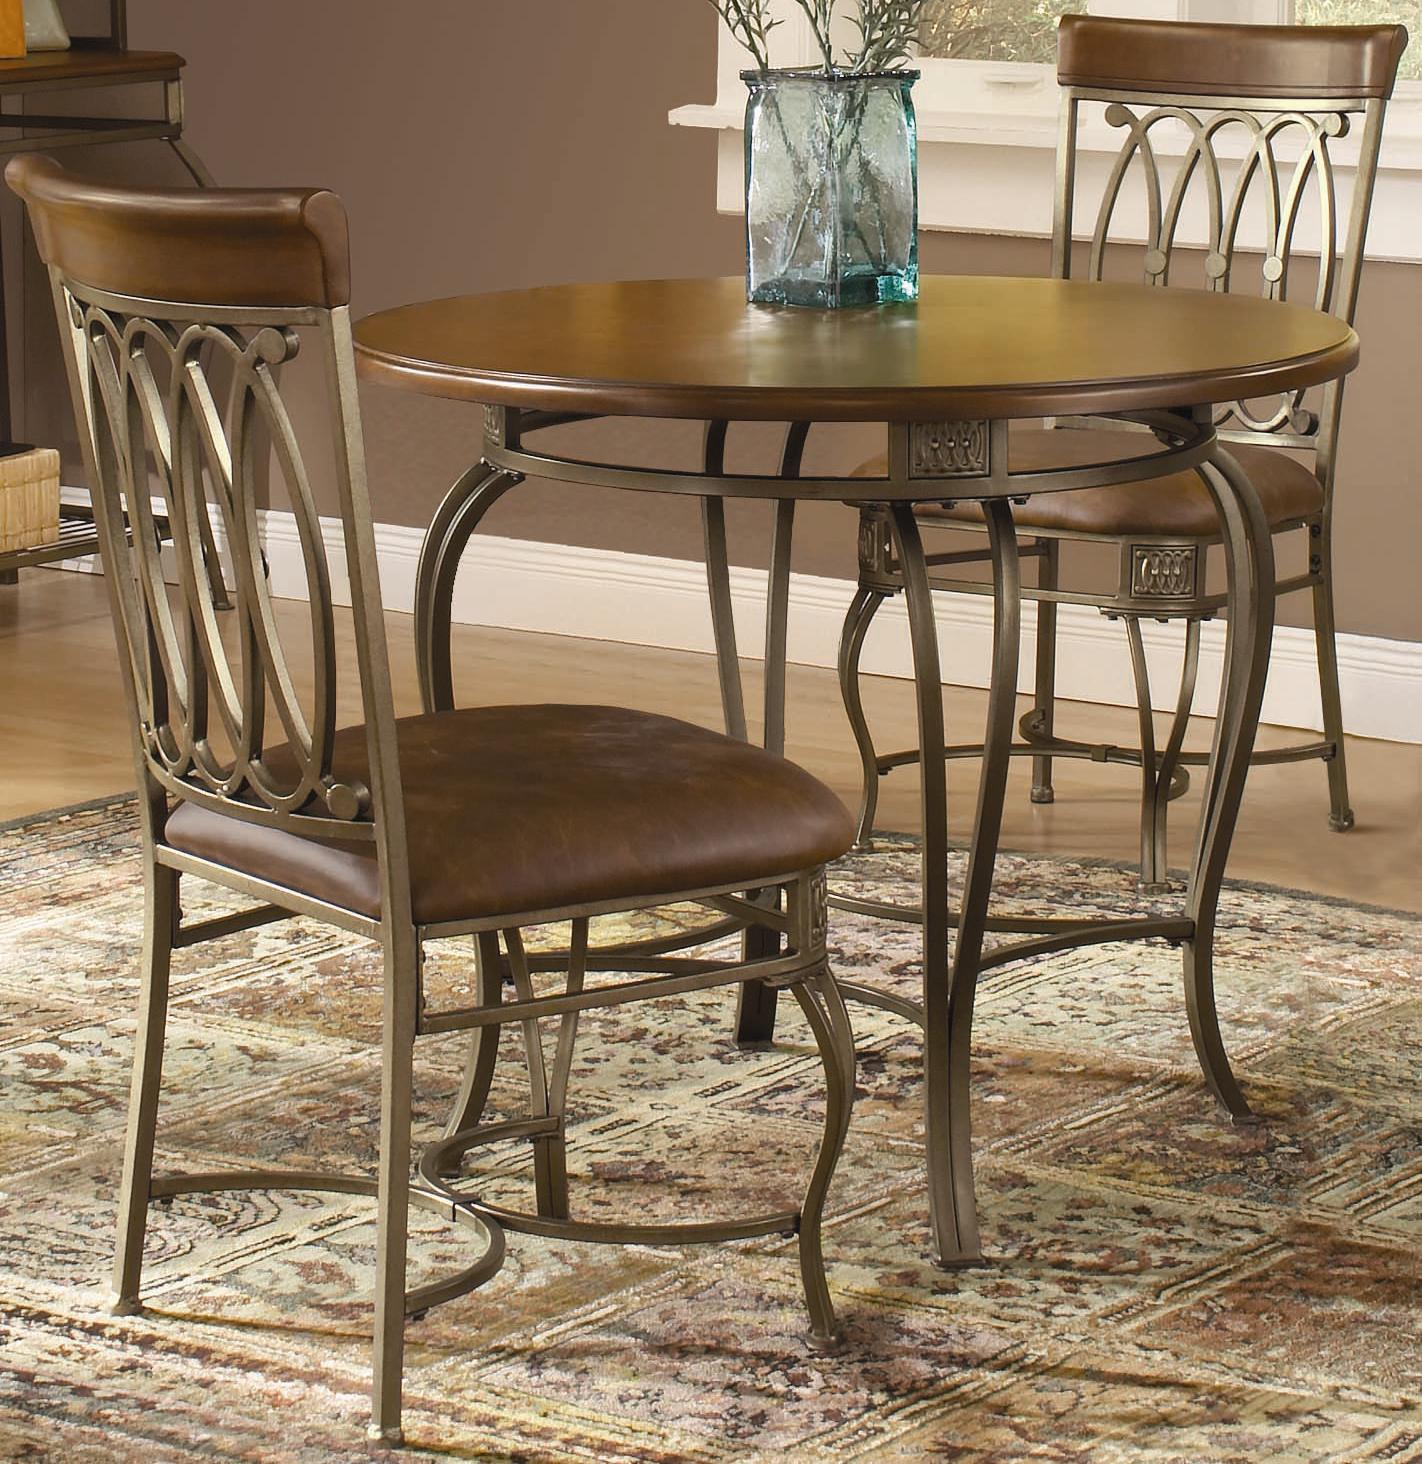 Hillsdale Montello 3 Piece Bar Height Bistro Set   Wayside Furniture   Pub  Table And Stool Set